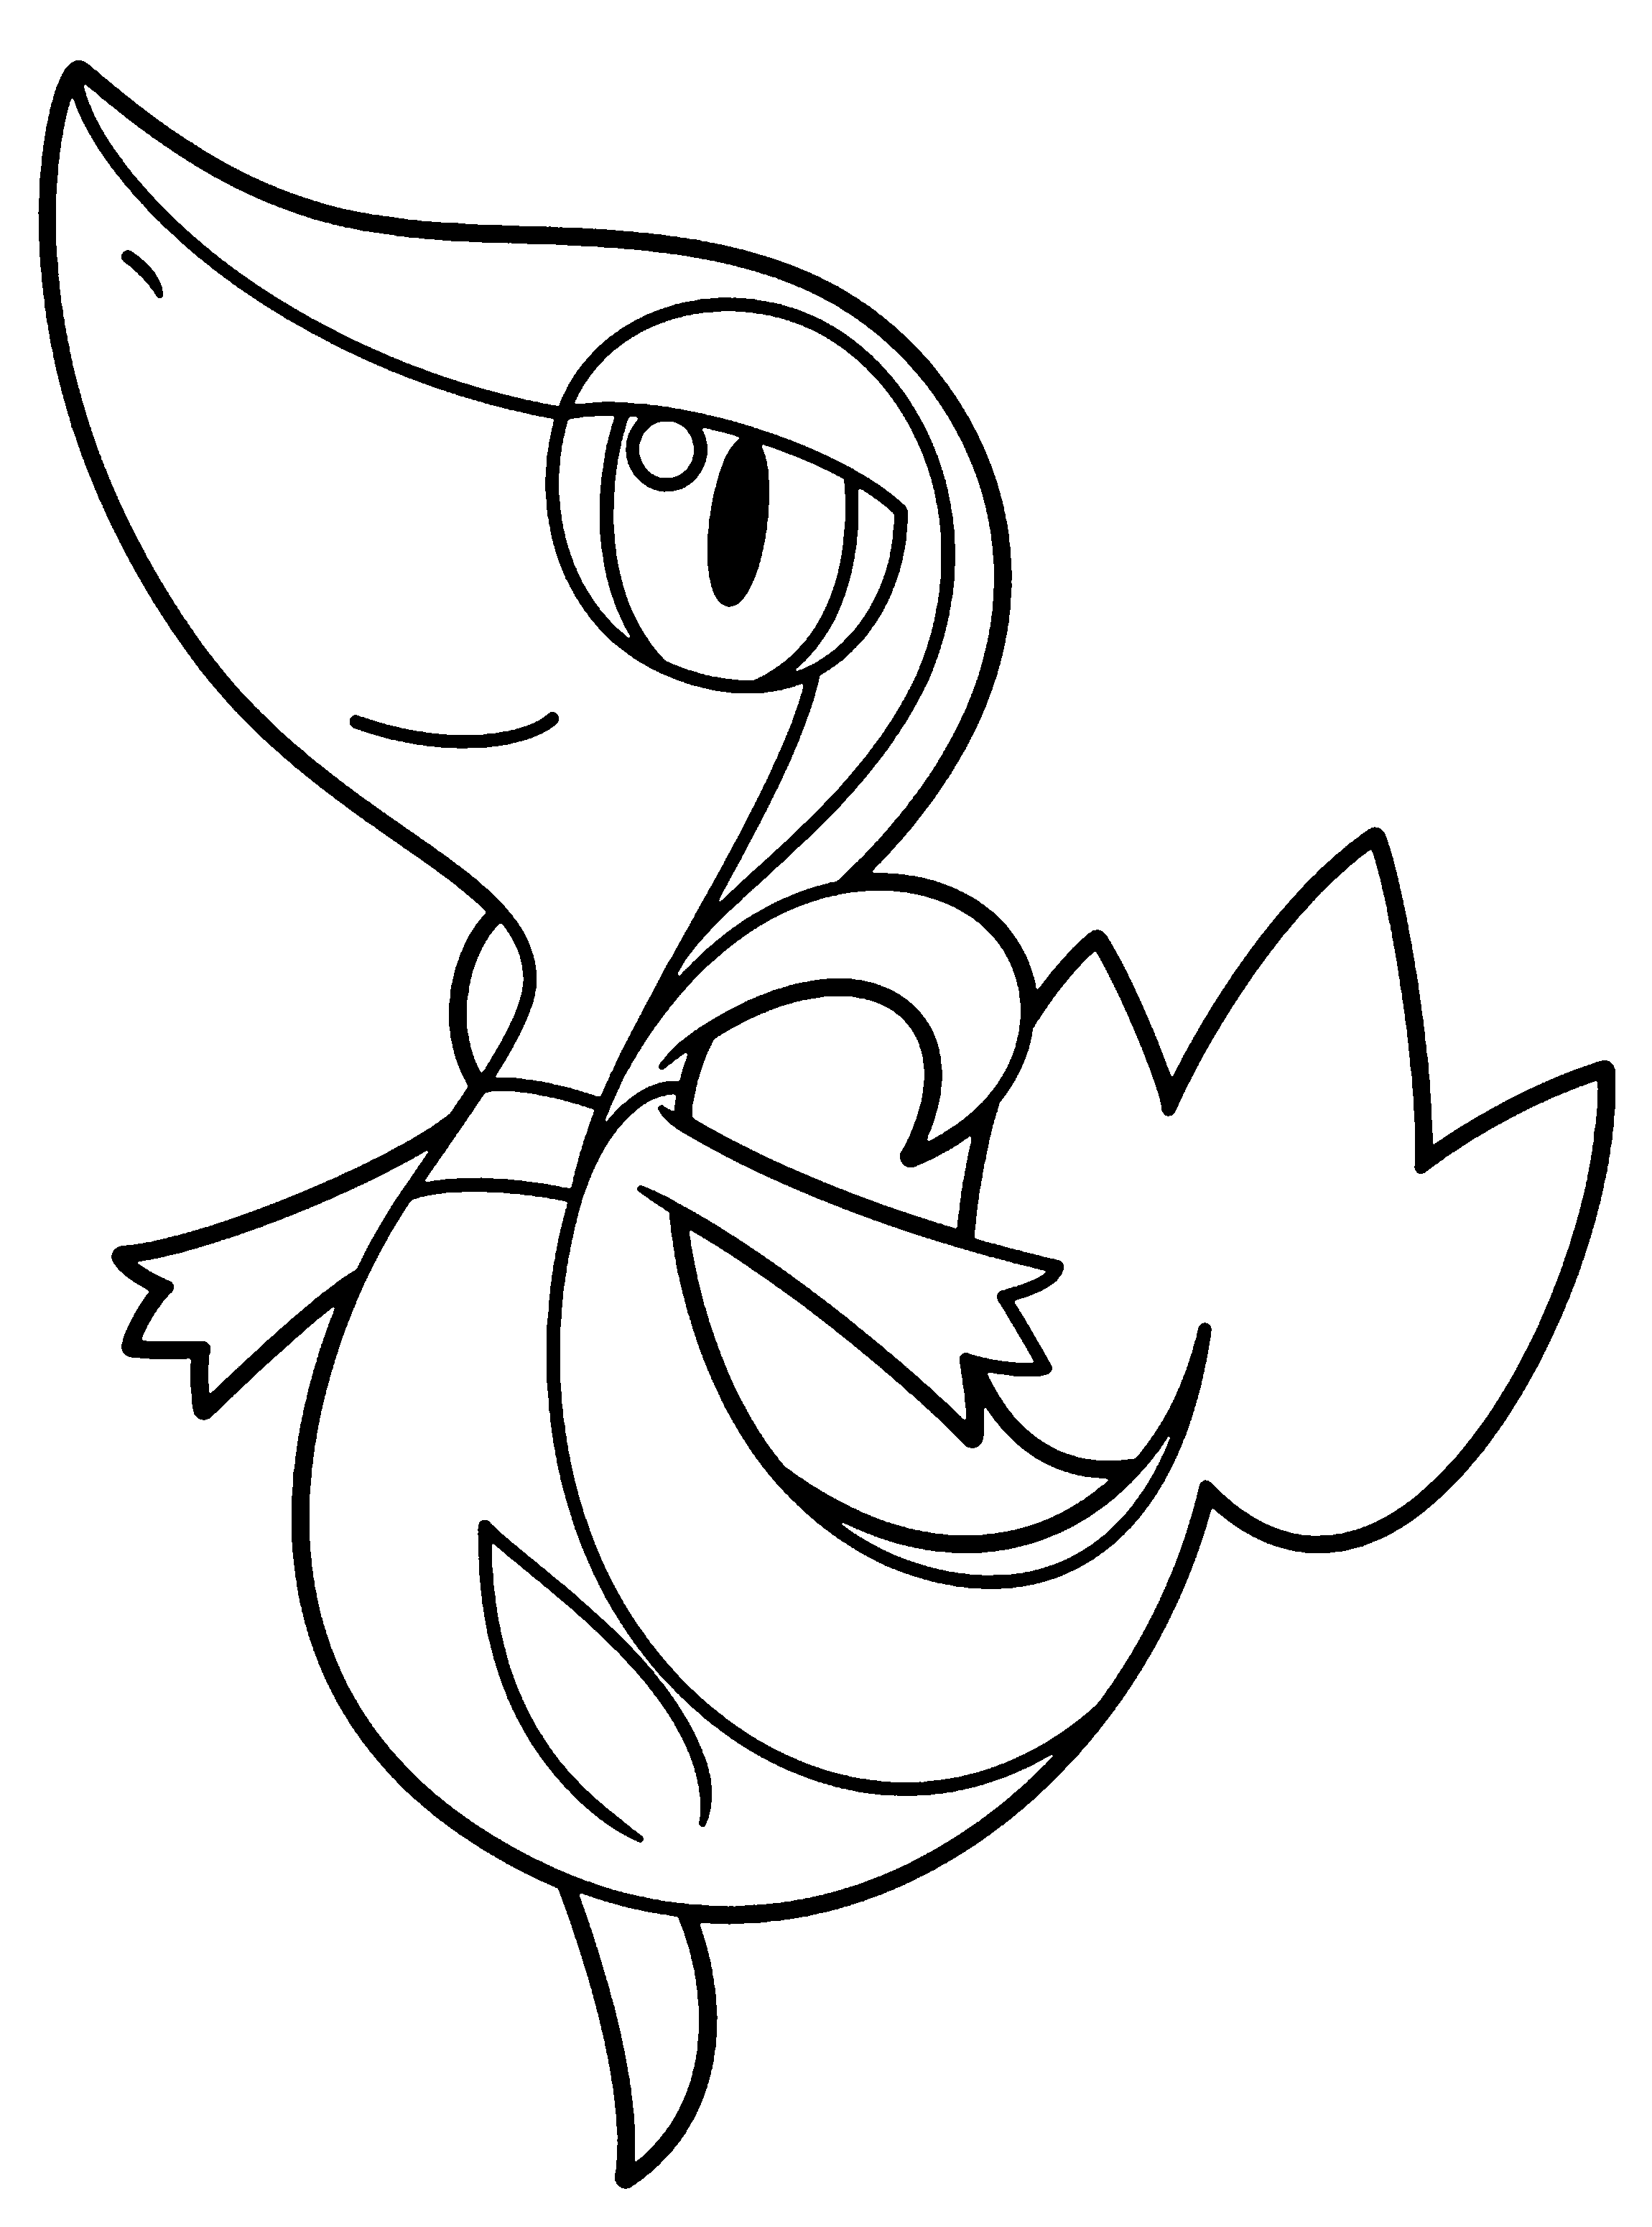 Kleurplaten Pokemon Squirtle.Pokemon Axew Coloring Pages Coloring Home